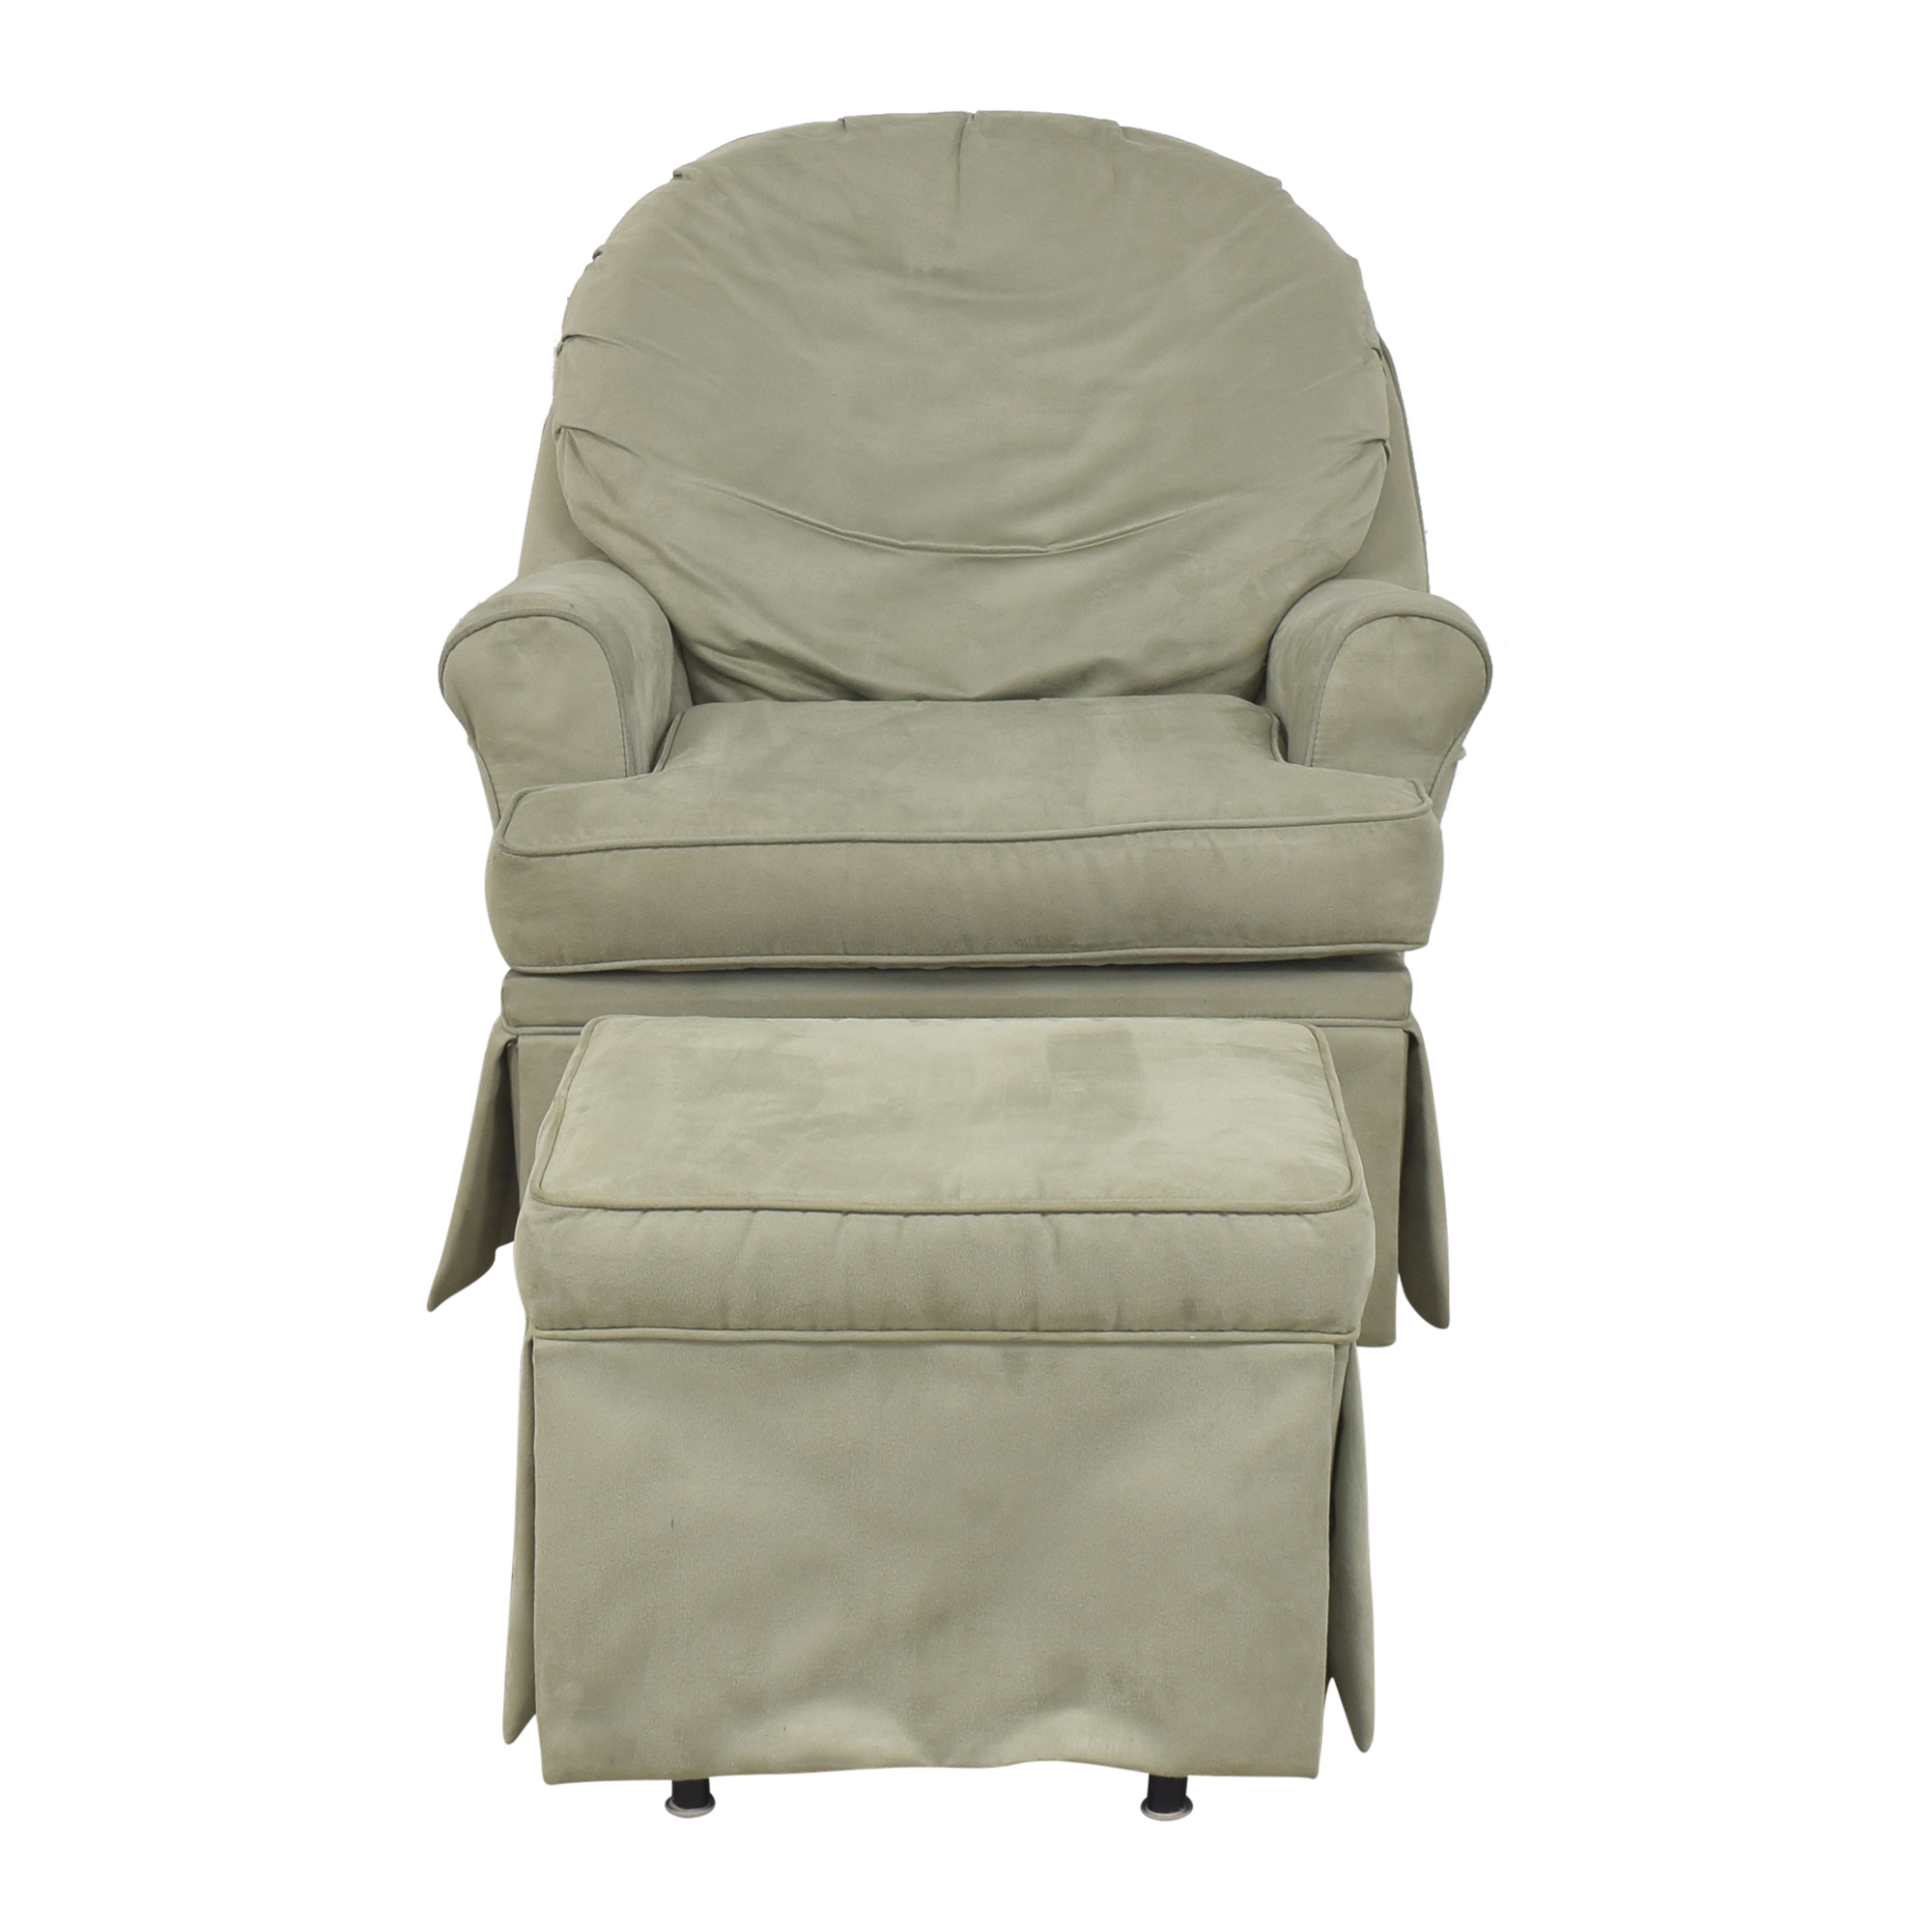 Dutailier Dutailier Upholstered Glider with Ottoman pa